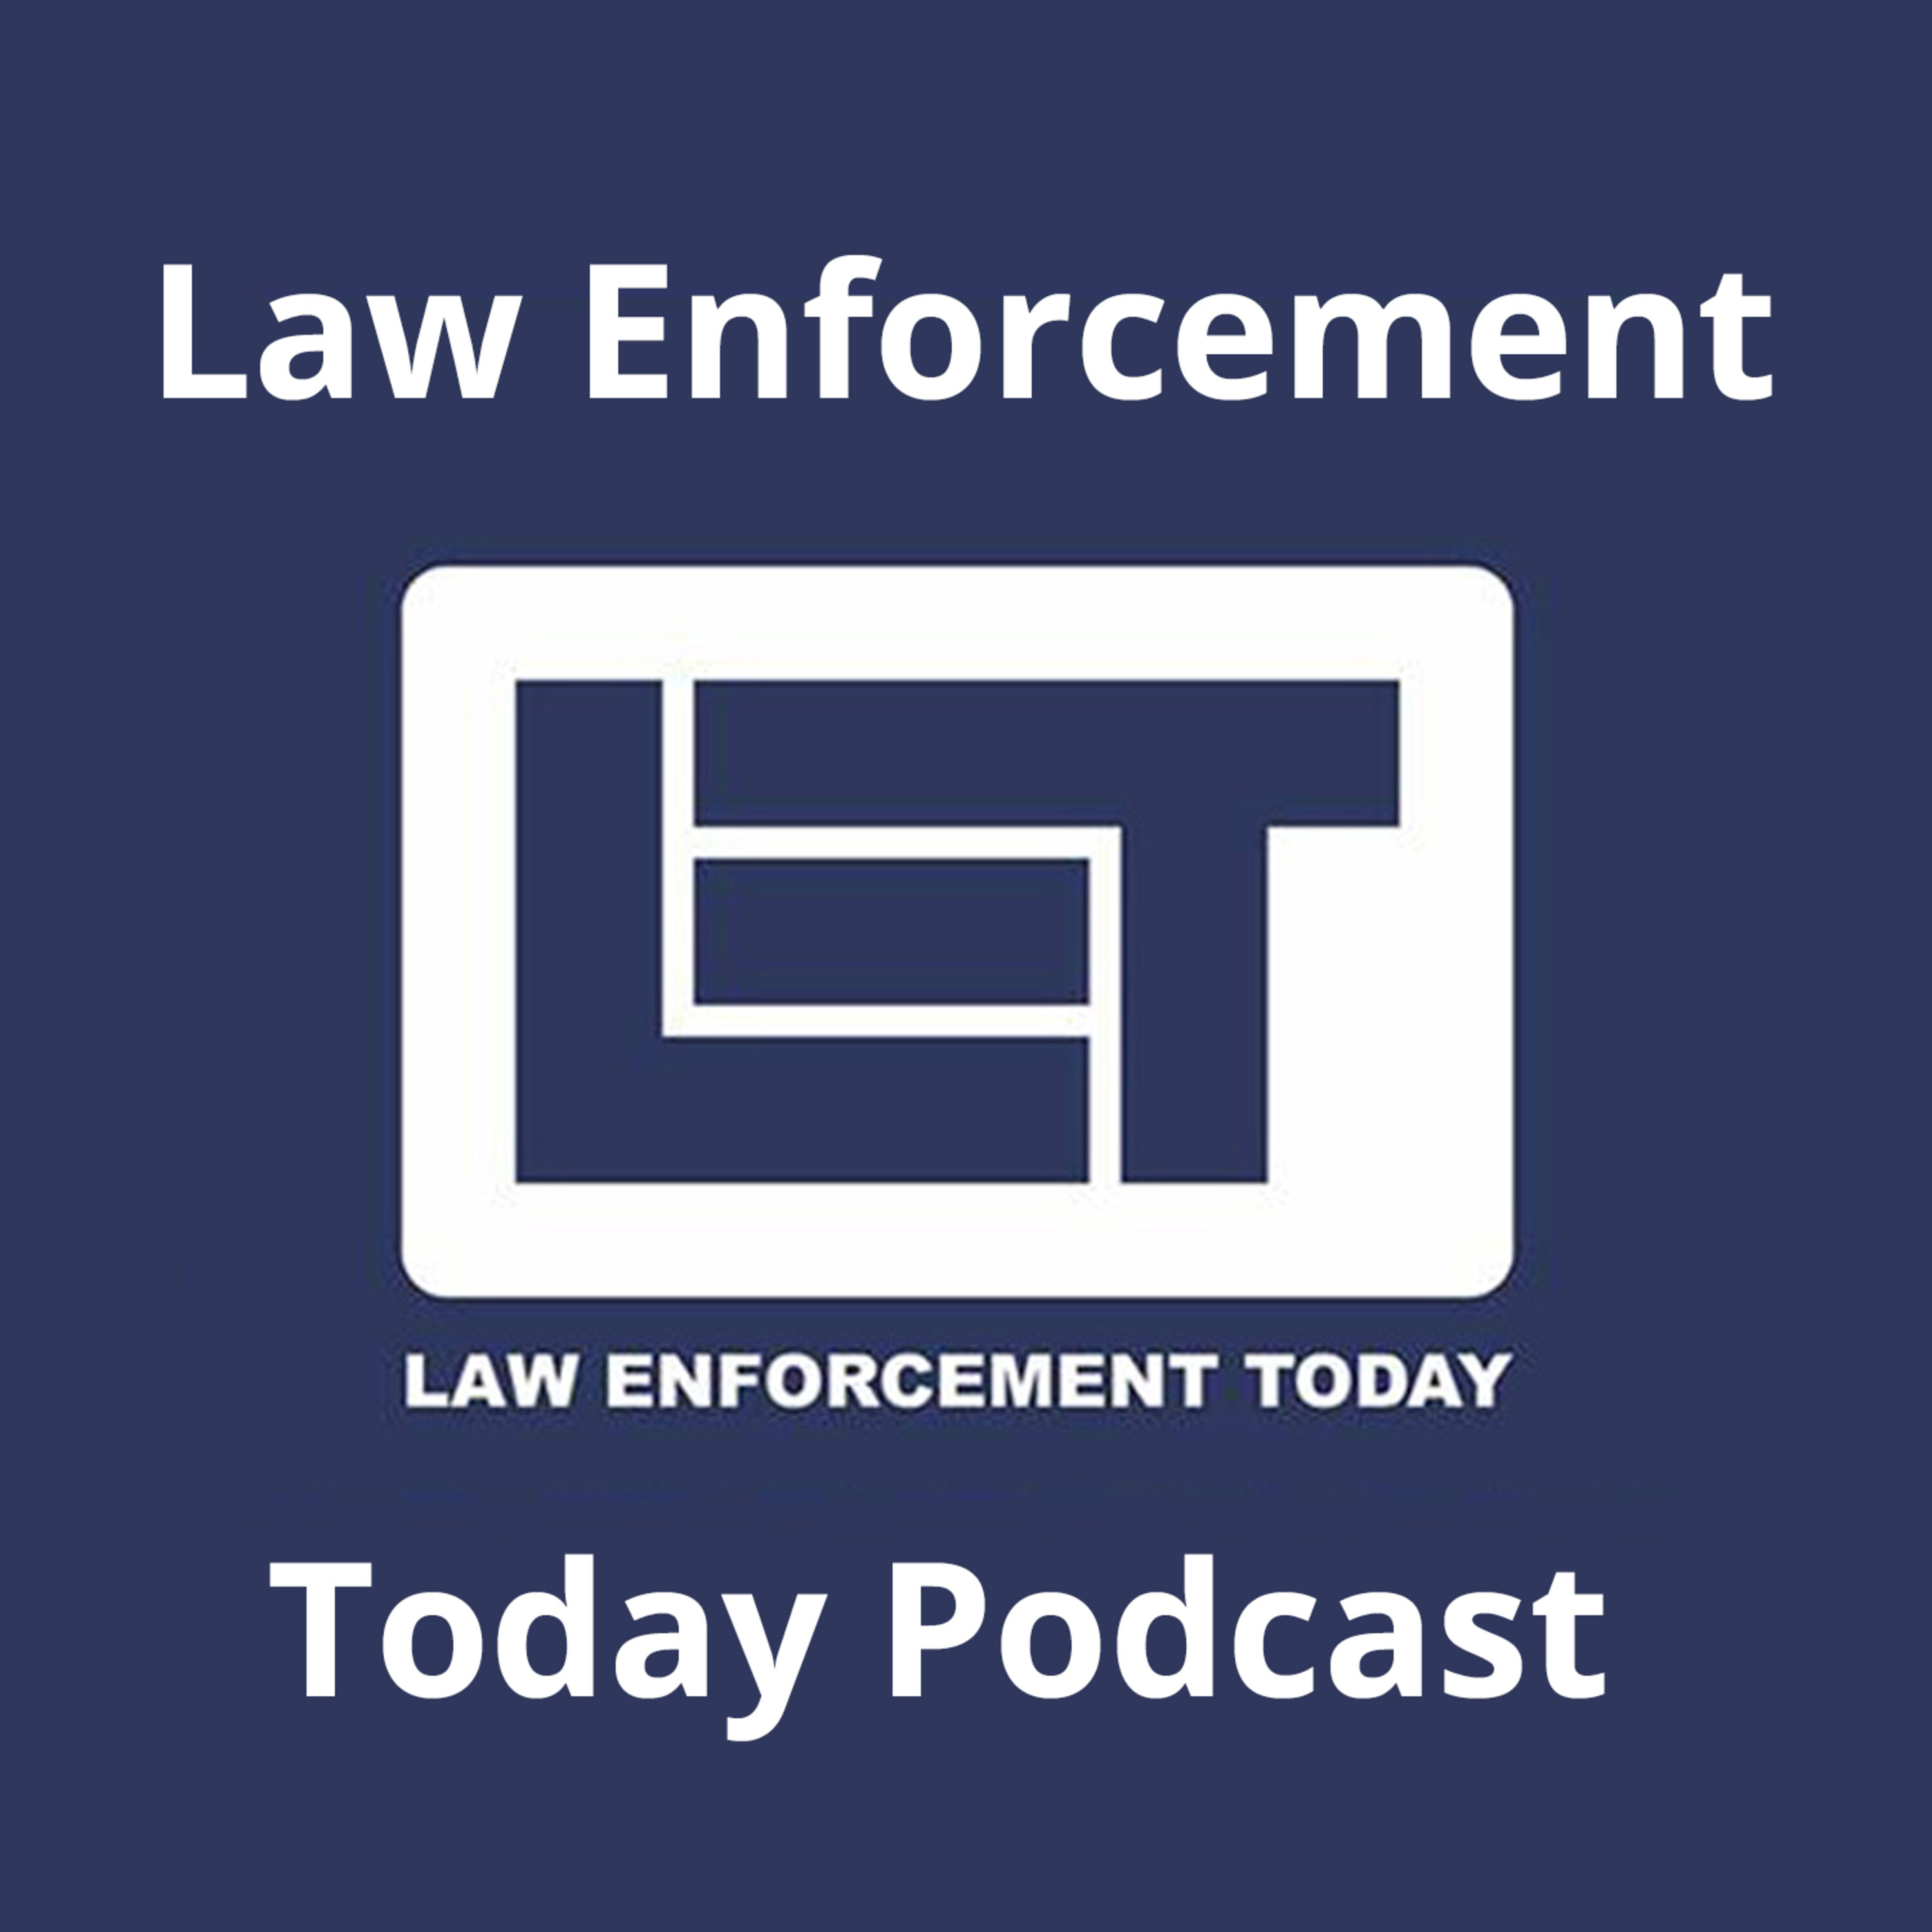 law enforcement today The second biggest challenge facing law enforcement, receiving 222% of the responses, was that communities need to focus on electing strong judges and criminal justice officials.